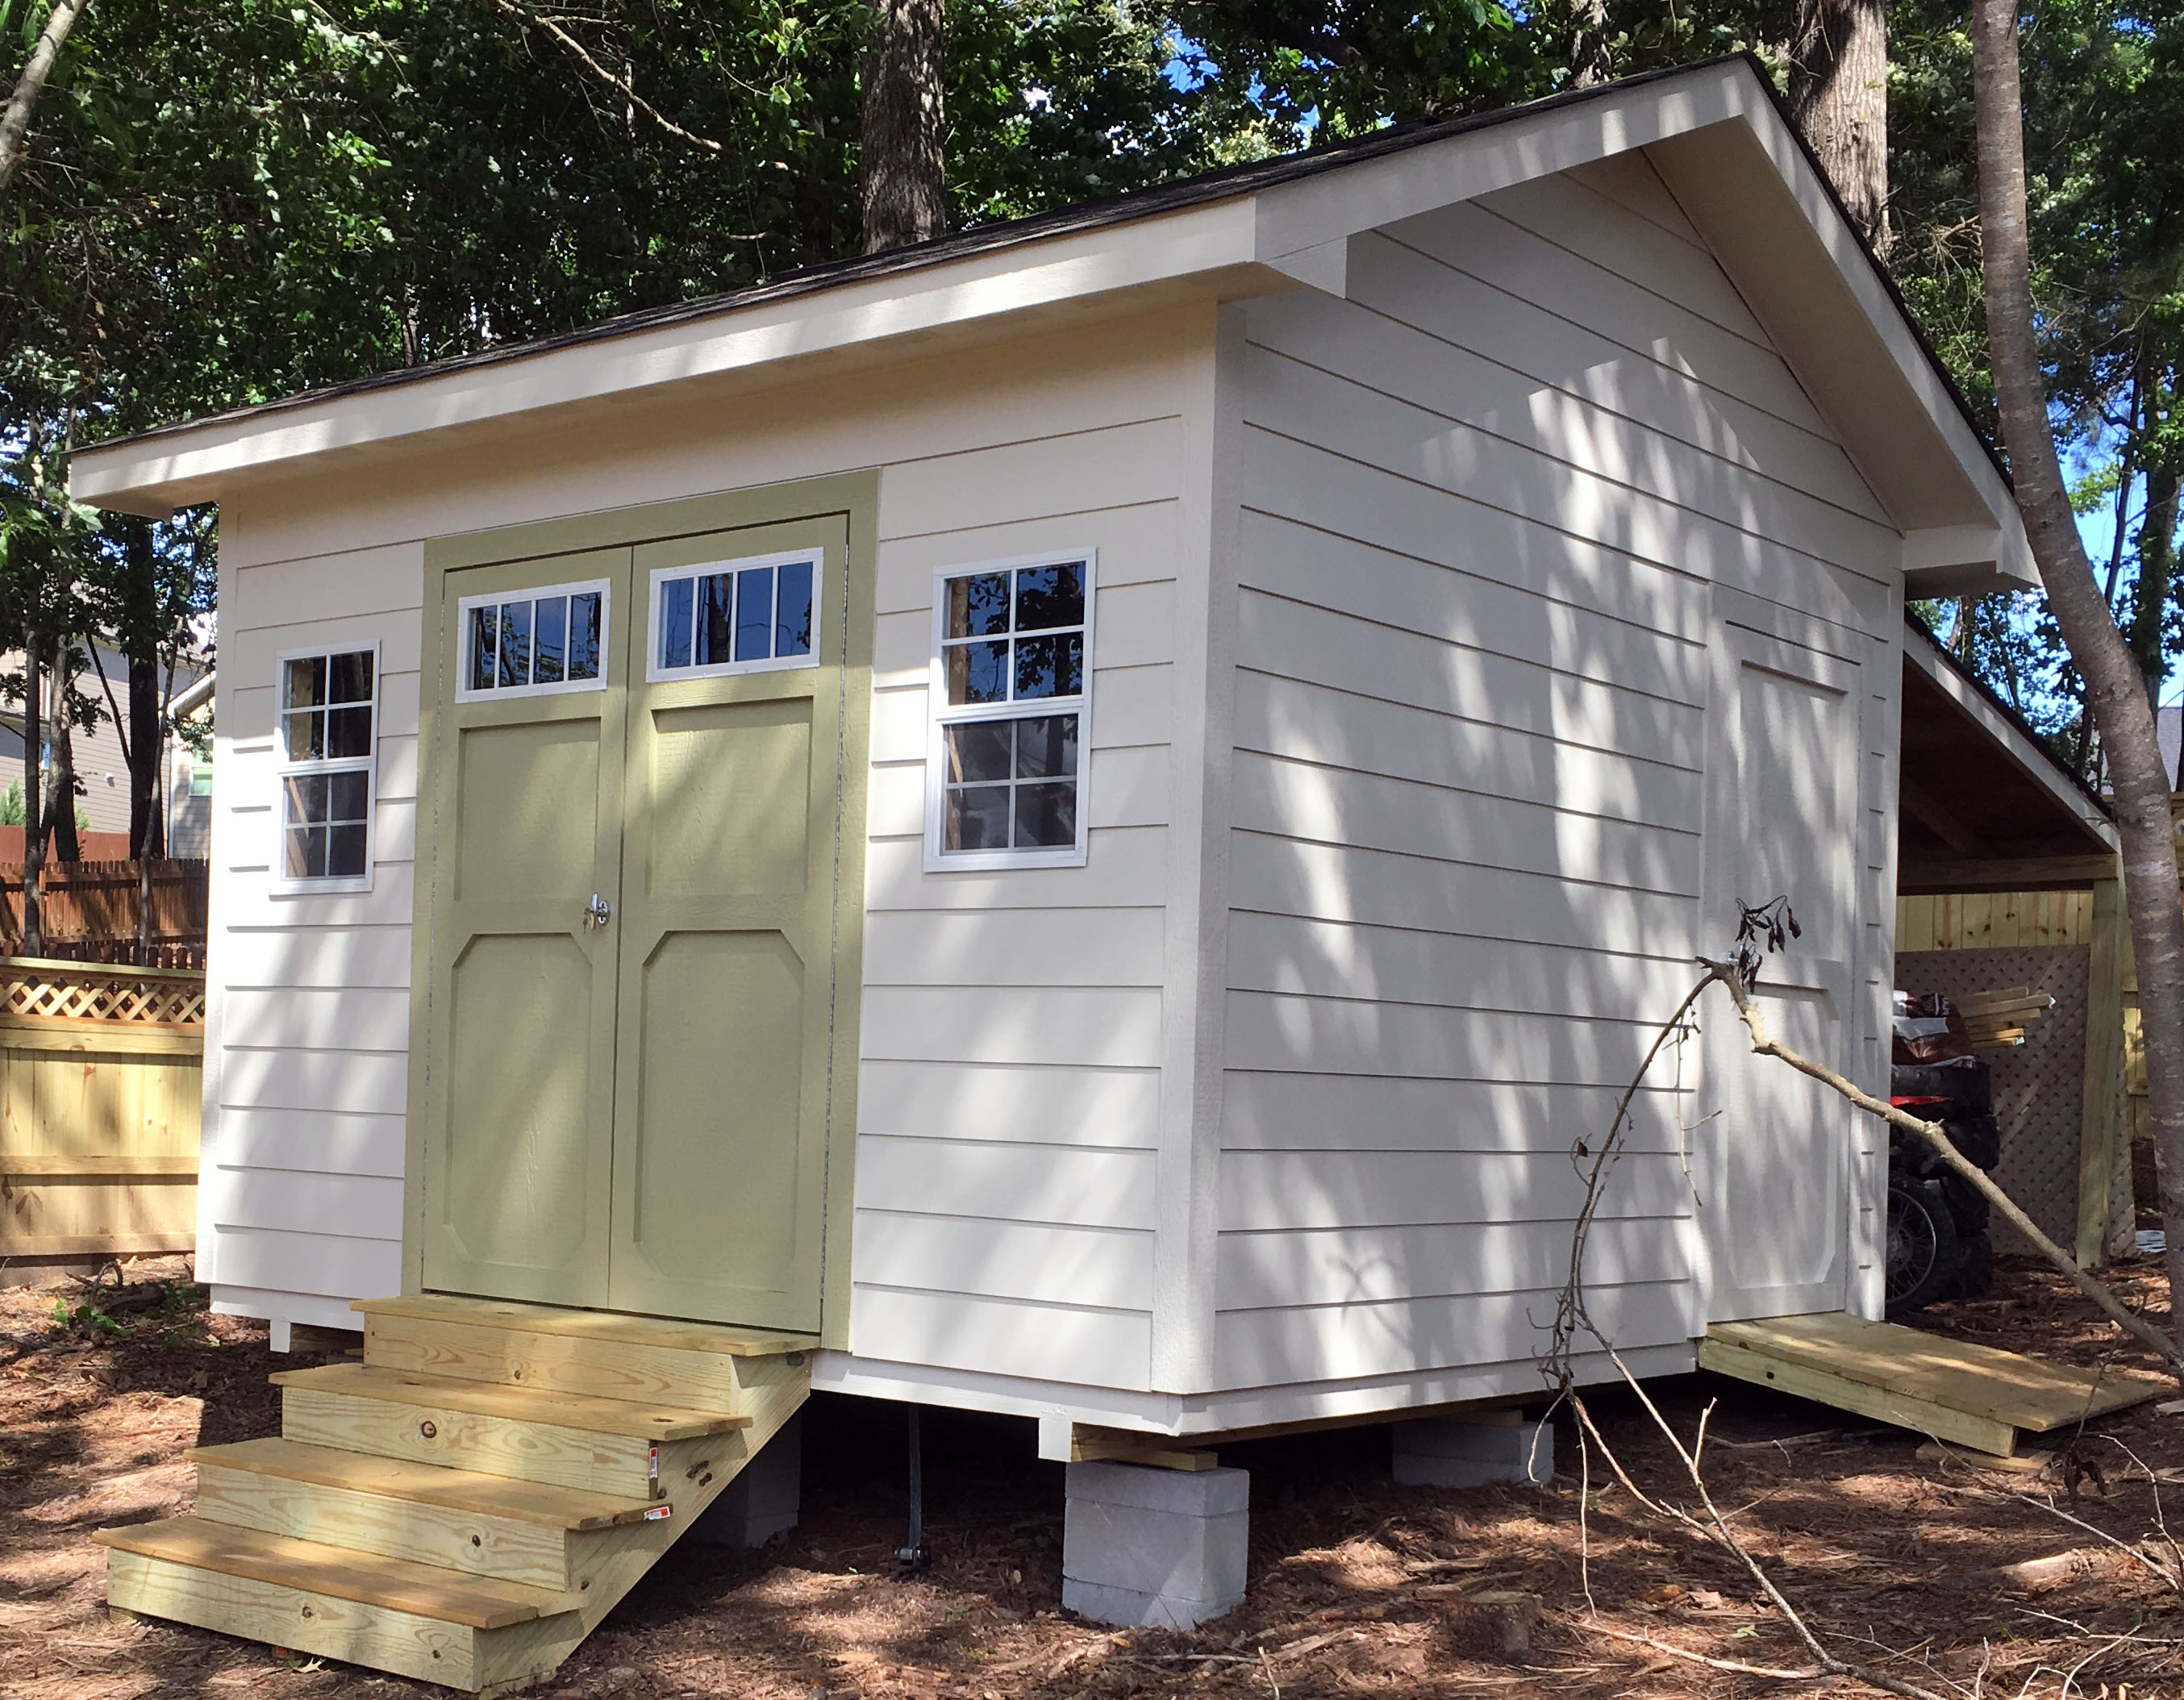 pool house raleigh subject prices office call are carolina to for valid the yard barns types all shed our sheds quotes cabin please pricing change current days